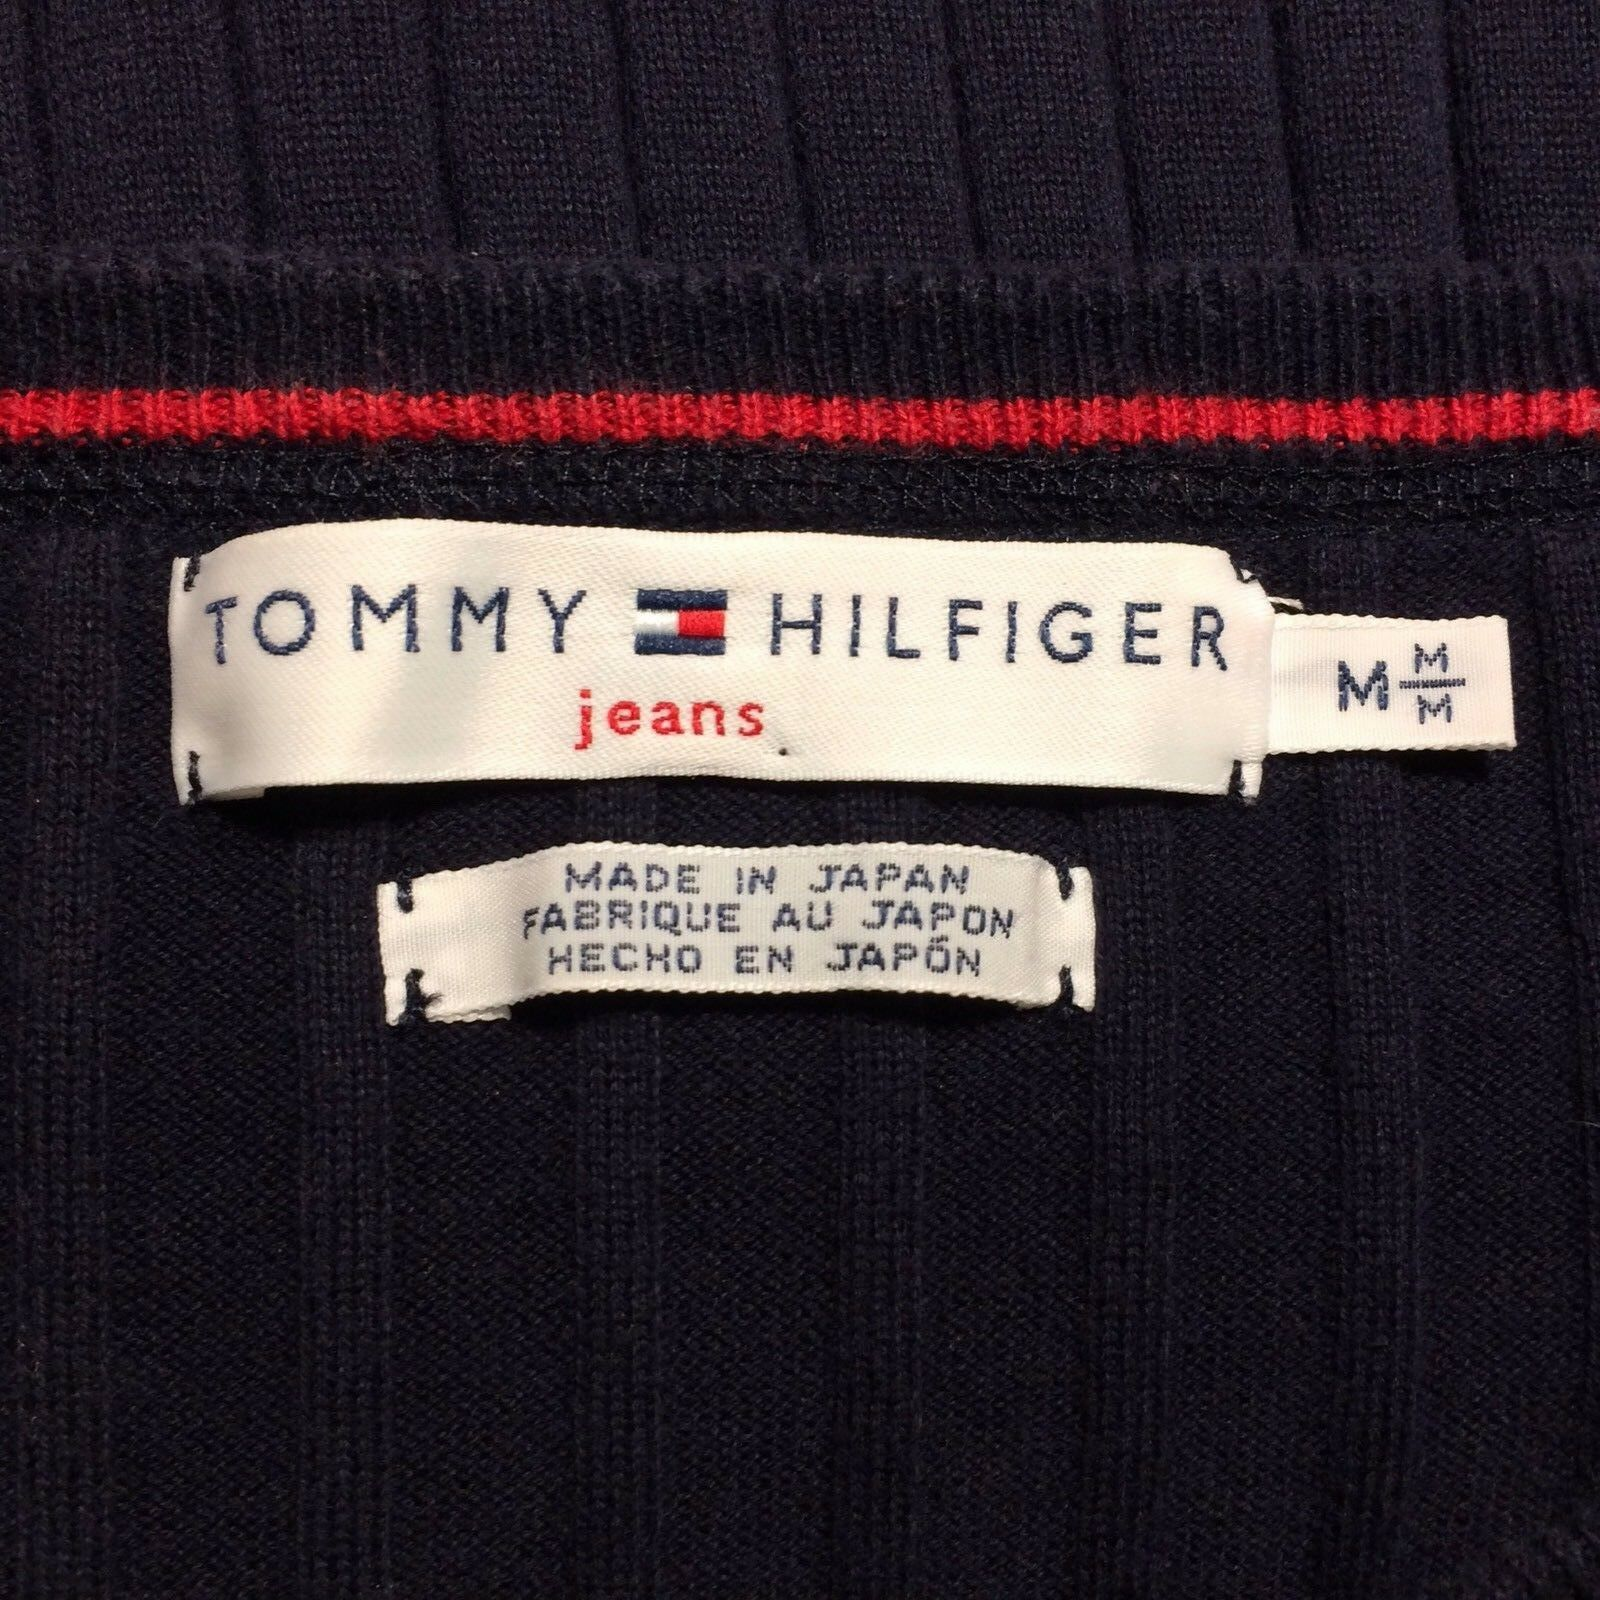 TOMMY HILFIGER  Damen Pullover Pullover Pullover M 38 Blau Rippen Shirt Oberteil Top Casual Style   New Style  56cb63